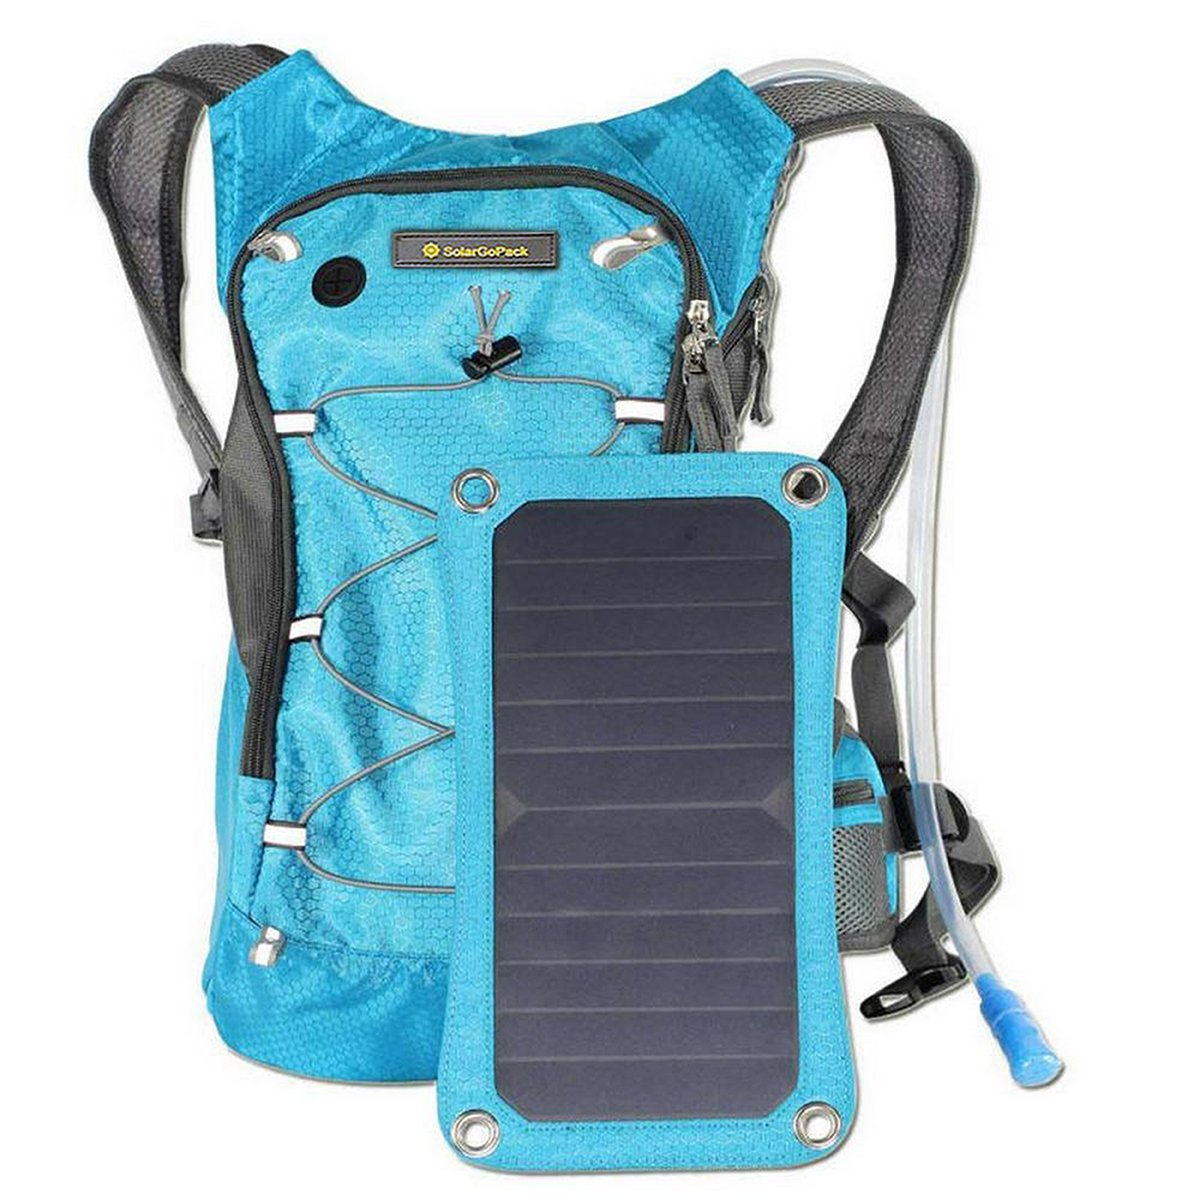 Amazon.com  SolarGoPack Solar Powered 1.8 Liter Hydration Backpack   7 Watt  Solar Panel and 10K mAh Charging Battery Phone and Electronic Device Power  ... a0e4b87fc00b8